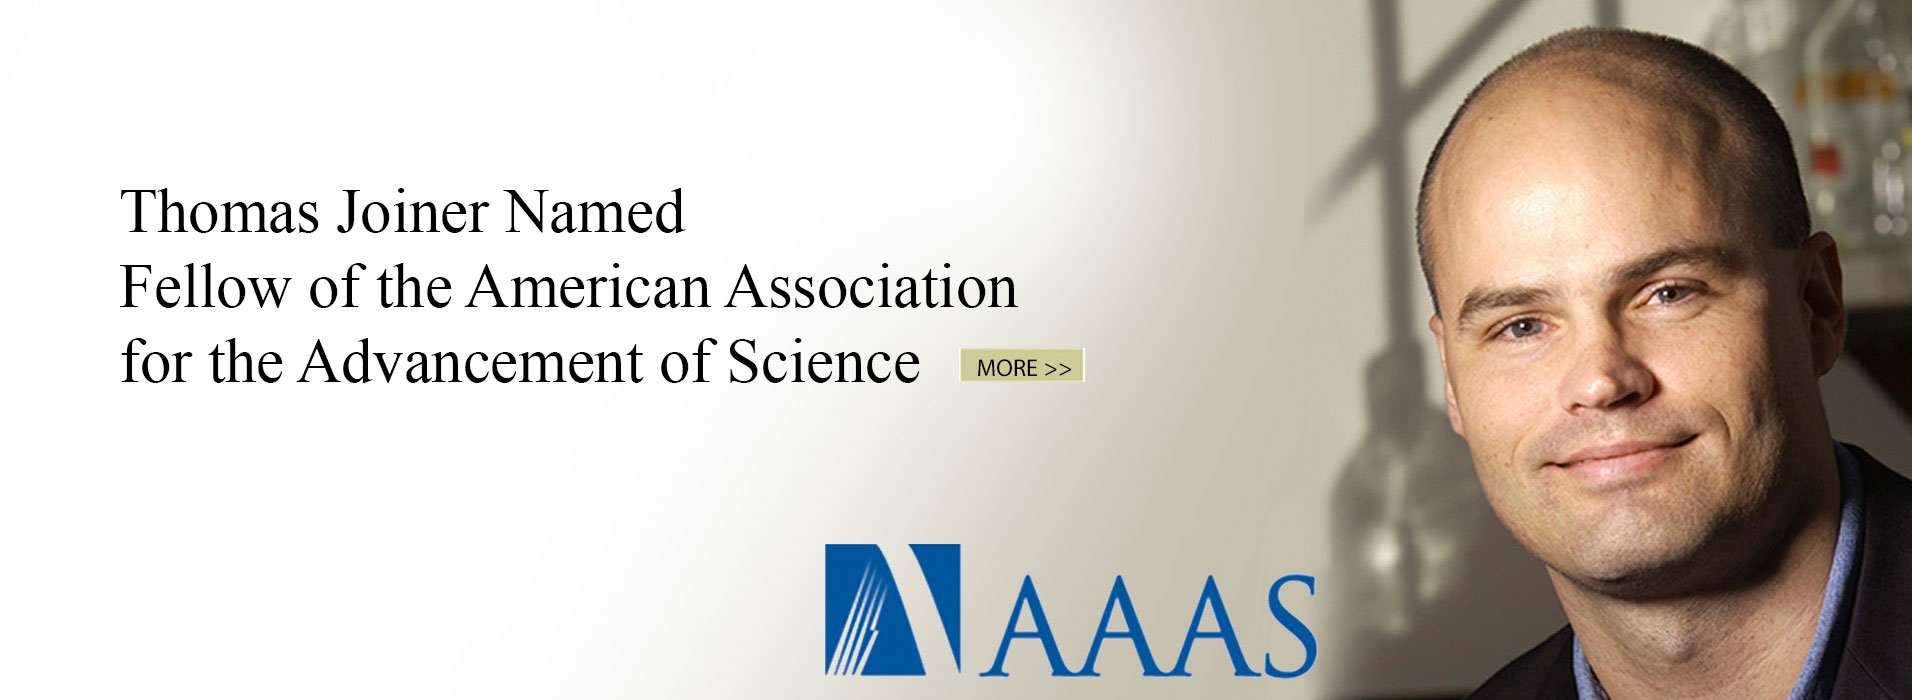 Thomas Joiner Named AAAS Fellow